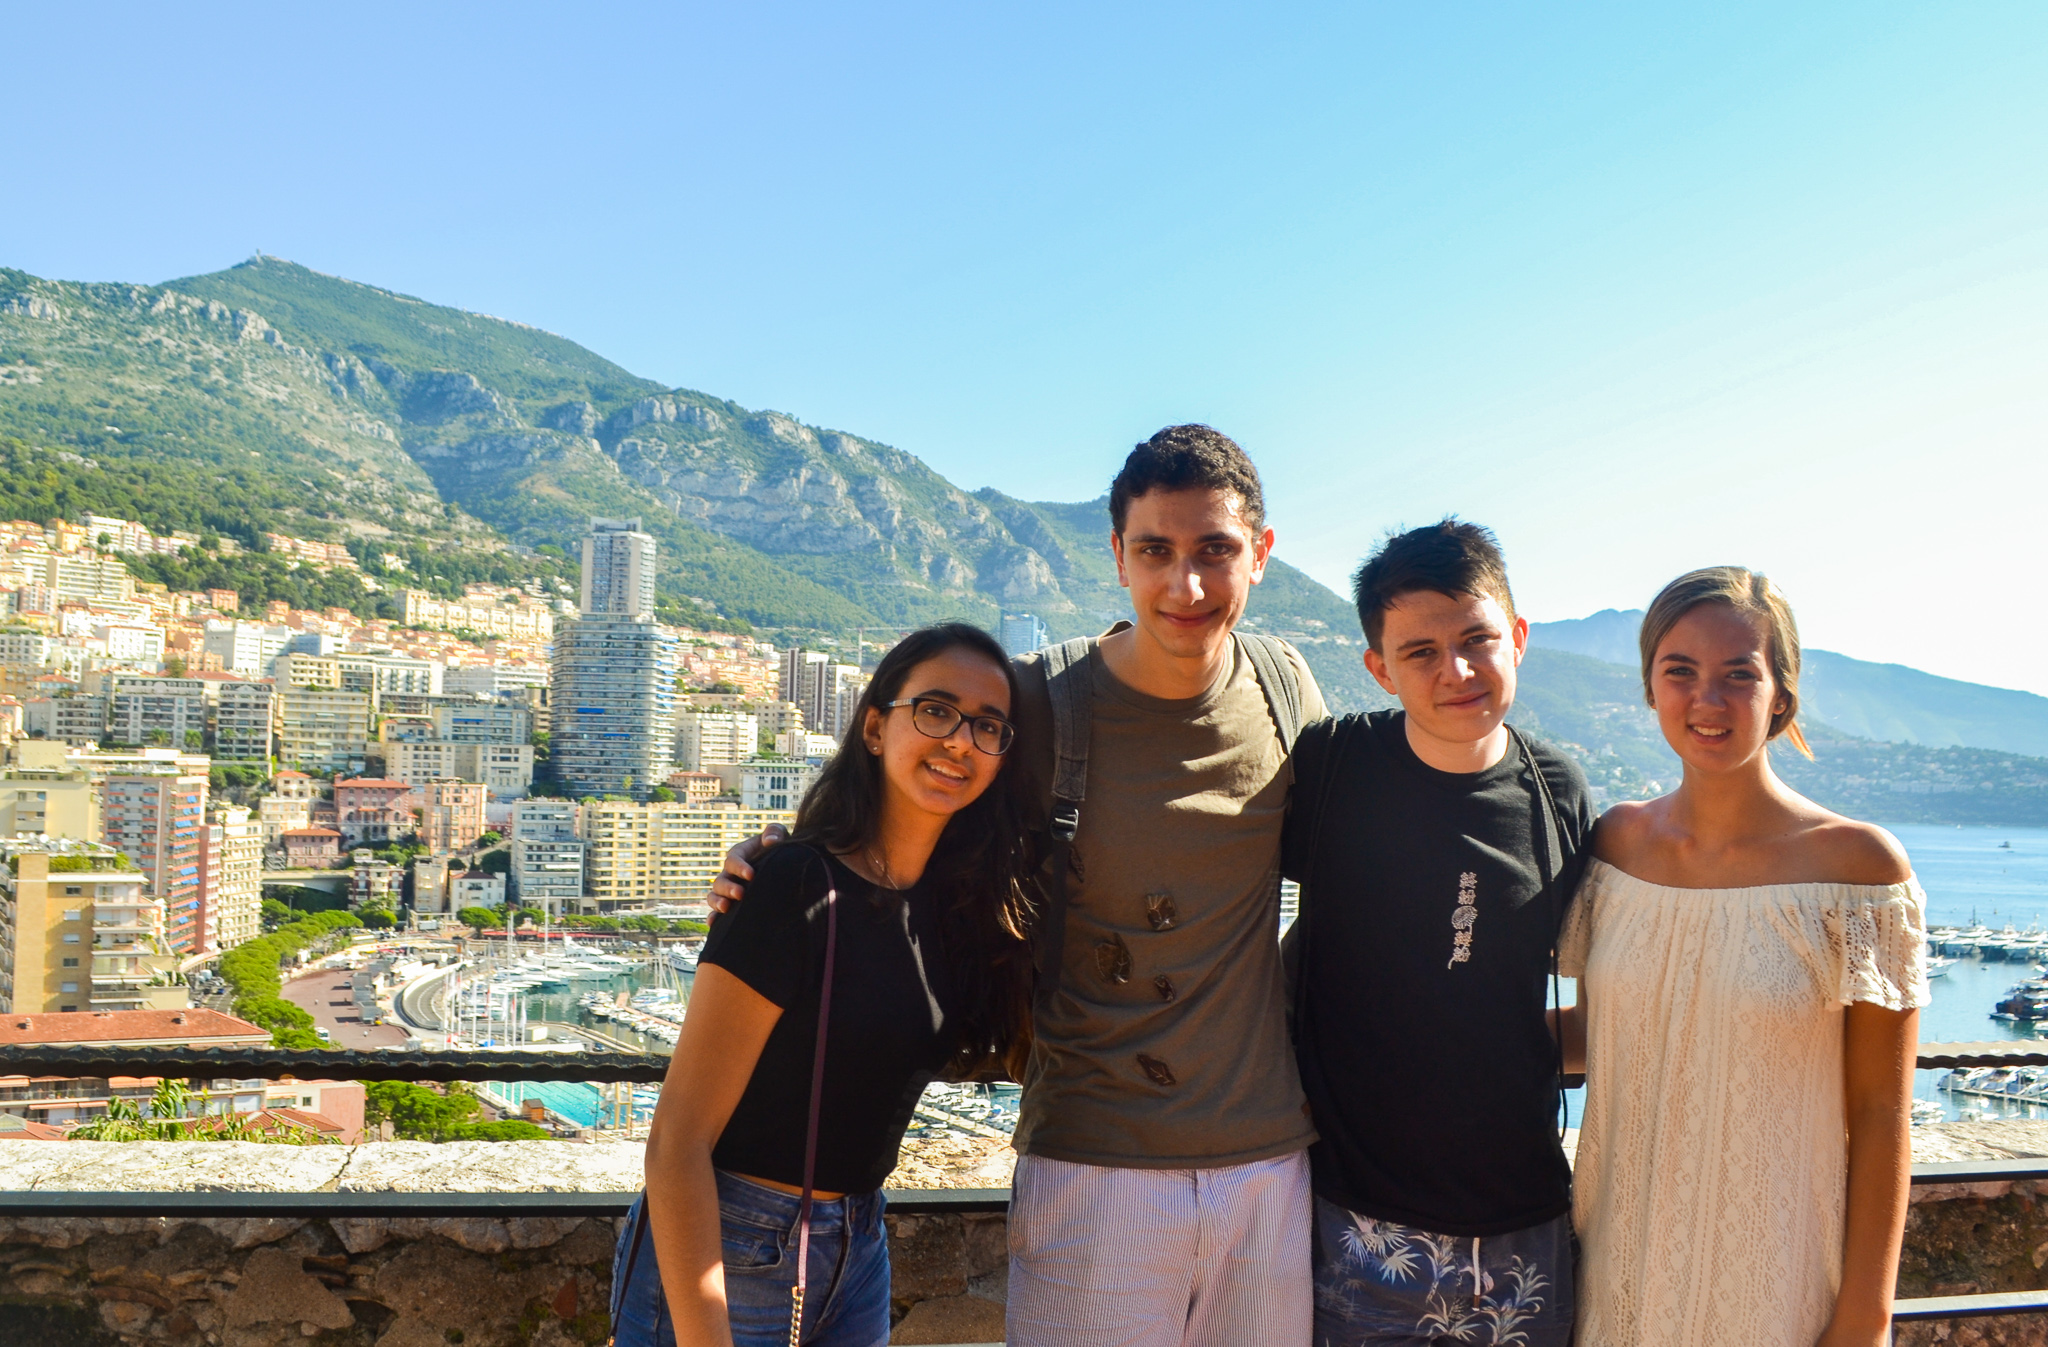 Summer Program - Group Travel | Travel For Teens: Europe for Older Teens - London, Paris, French Riviera and Barcelona